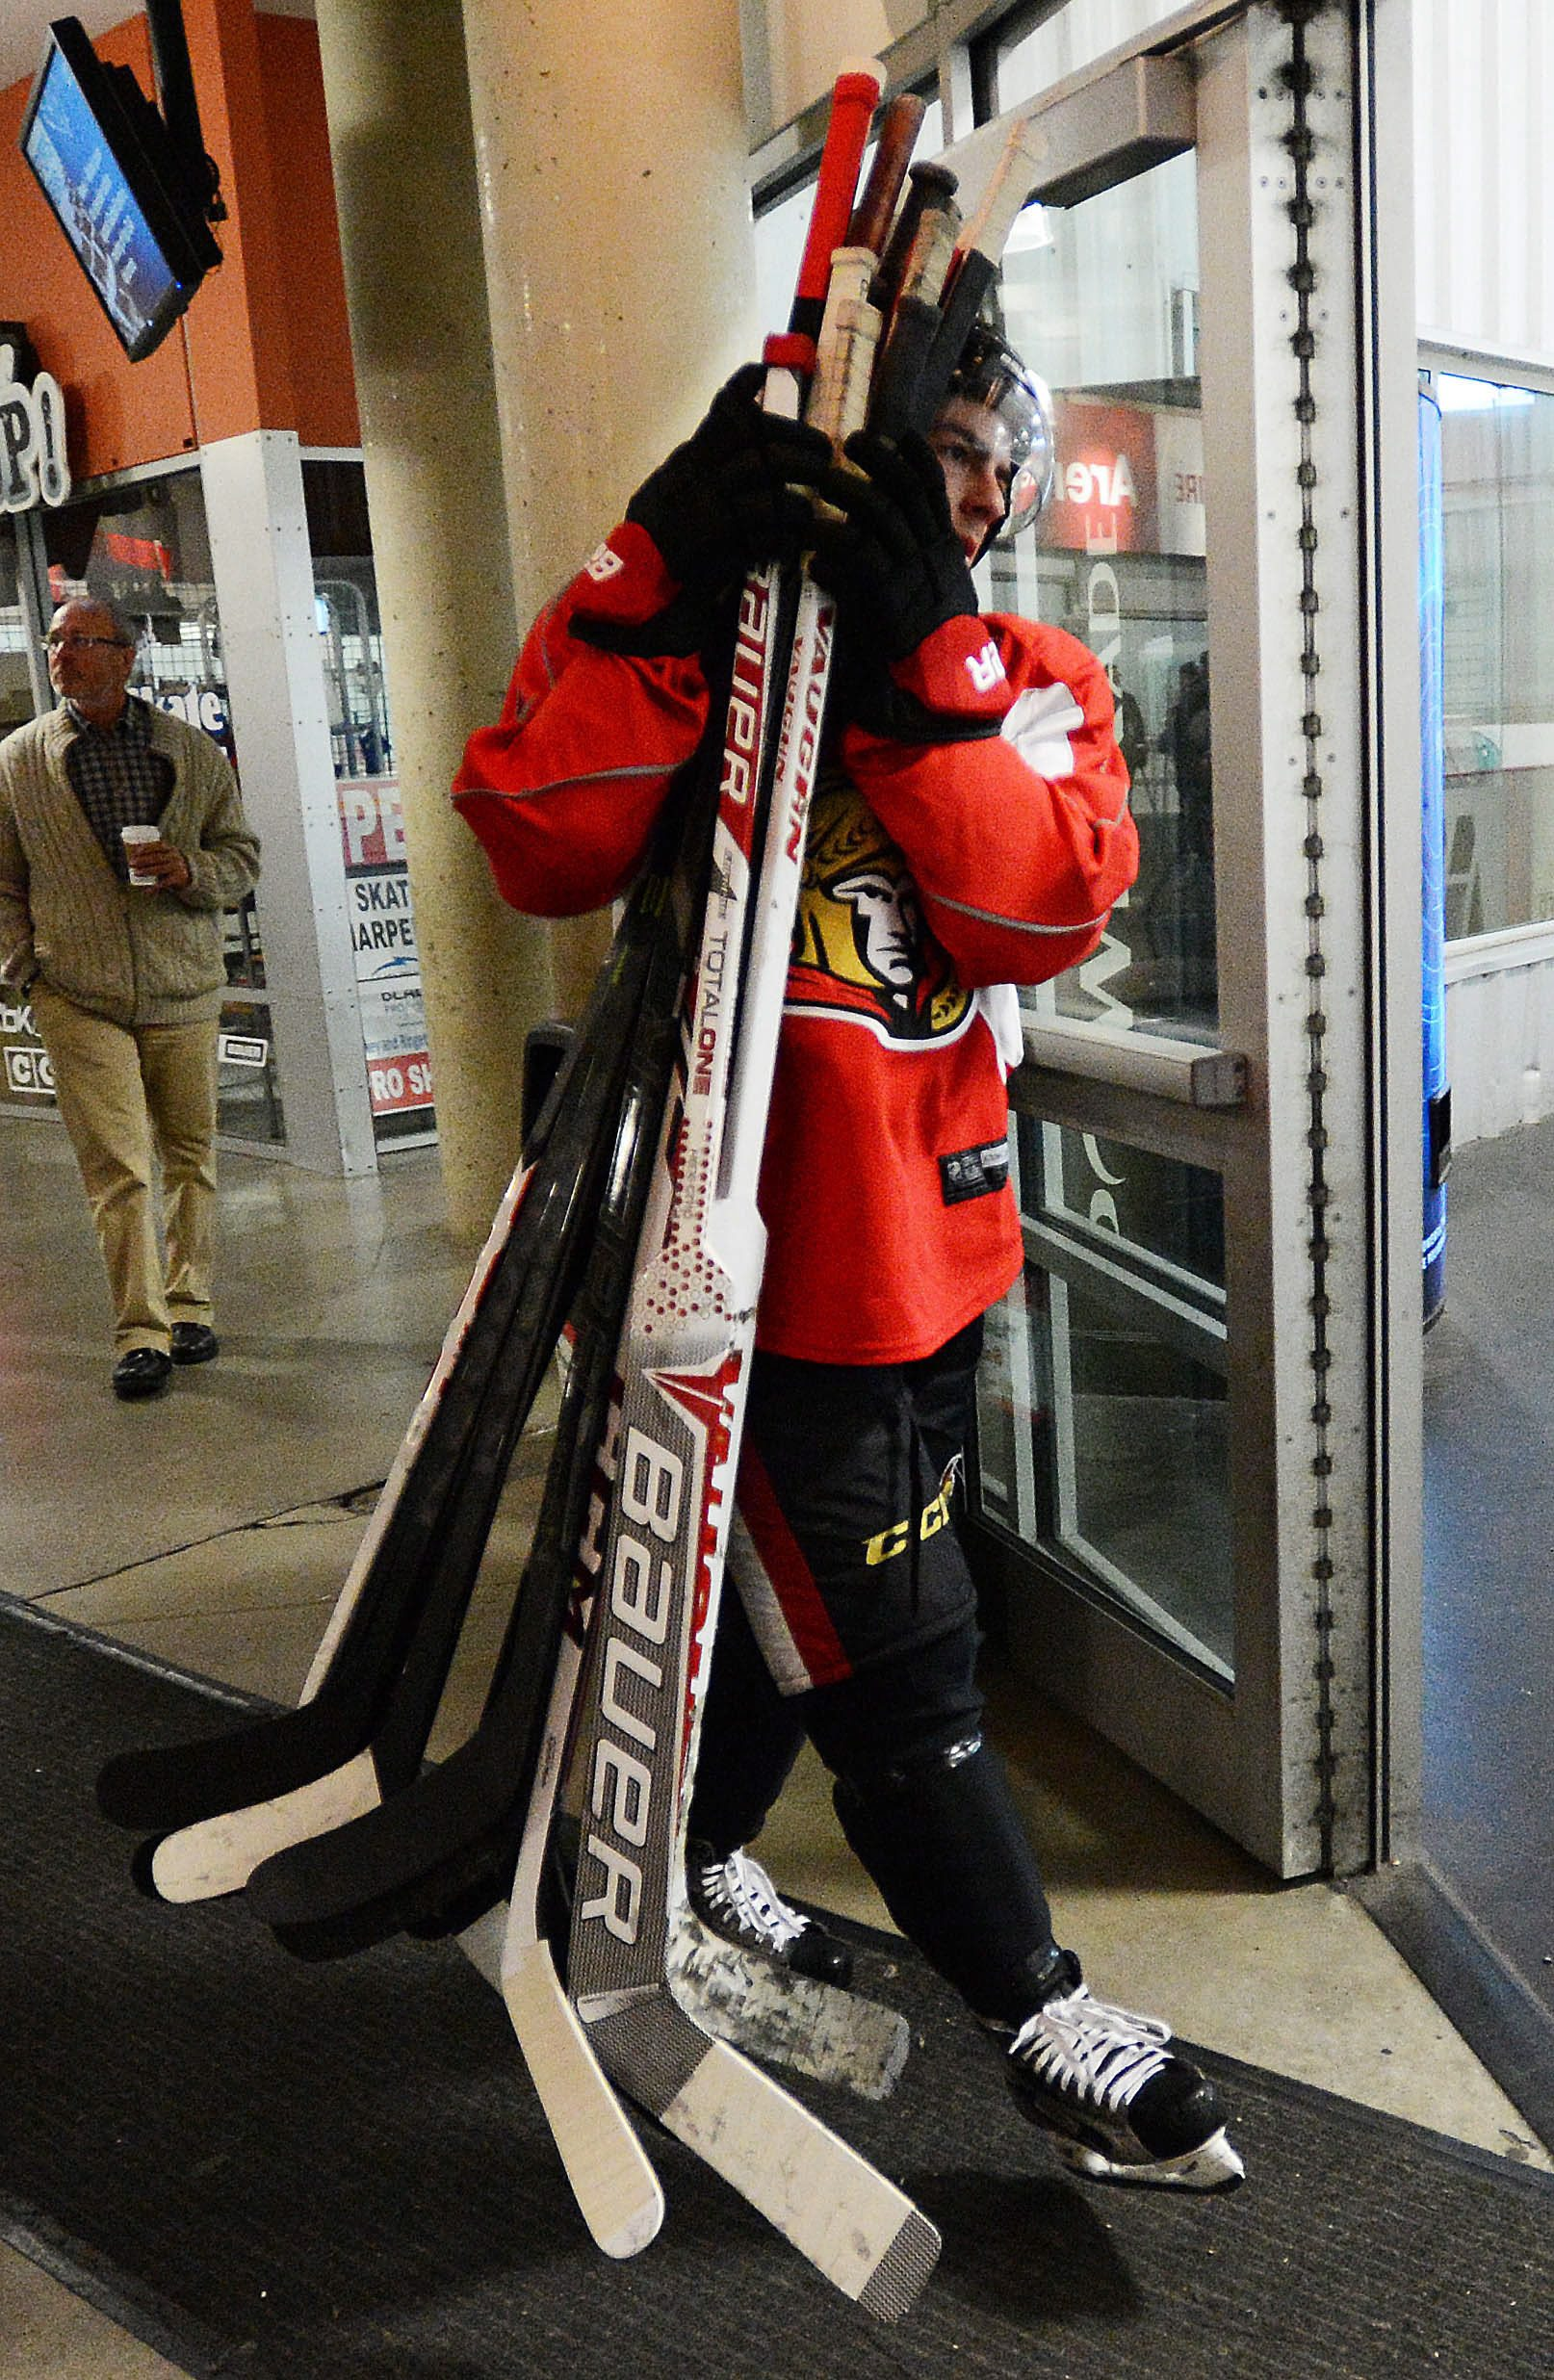 Ottawa Senators' Jean-Gabriel Pageau carries his teammates sticks as they change ice surfaces during the team's NHL hockey training camp in Ottawa,  on Thursday, Sept. 12, 2013